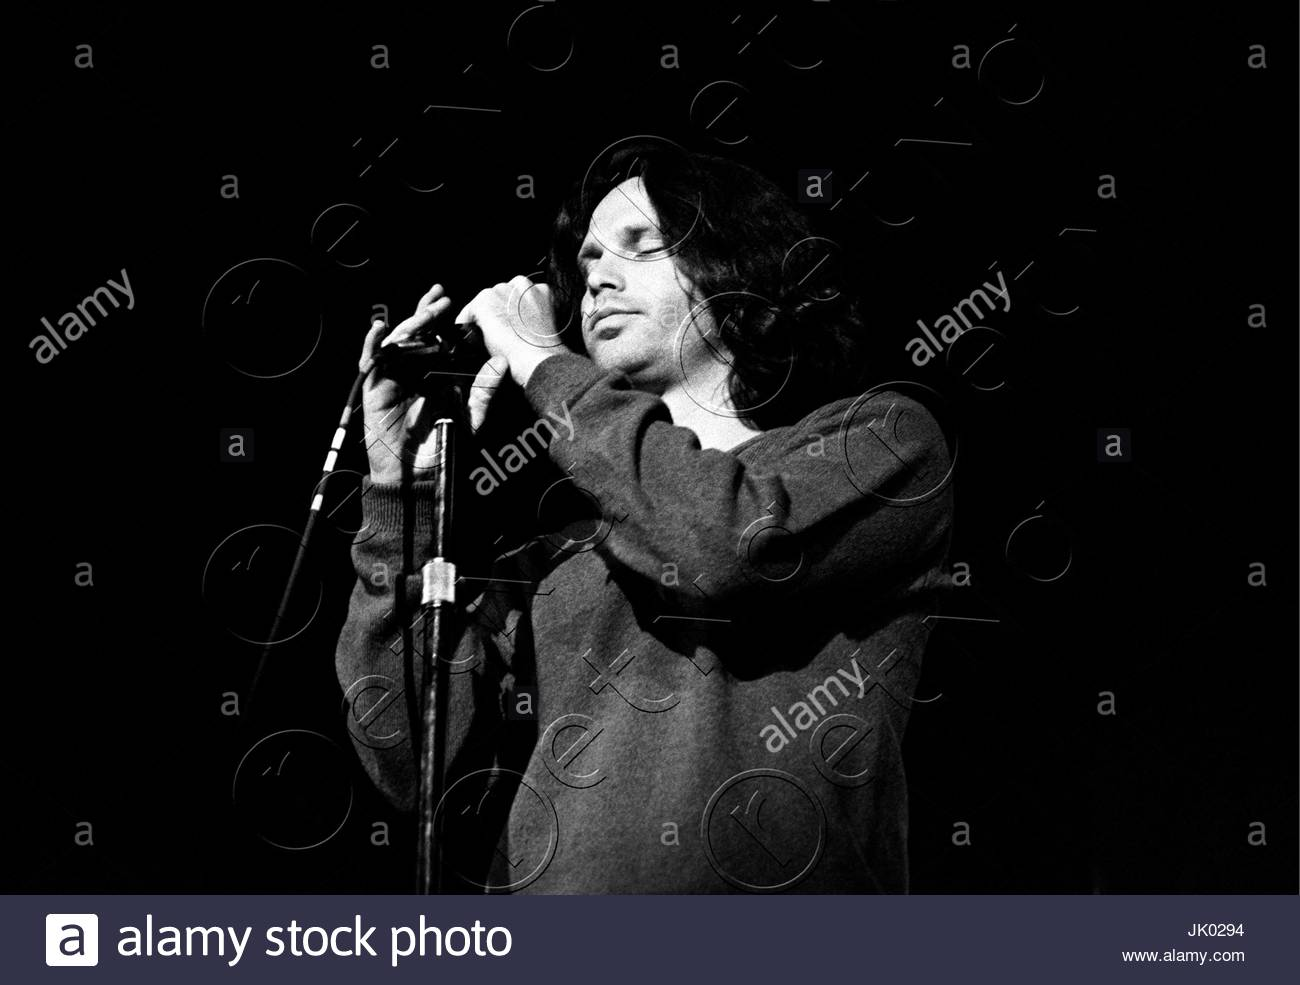 Jim Morrison of The Doors performing at the Boston Arena in Boston MA on April 10 1970. During this concert Jim Morrison asked the audience if \ anyone ...  sc 1 st  Alamy & Jim Morrison of The Doors performing at the Boston Arena in Boston ...